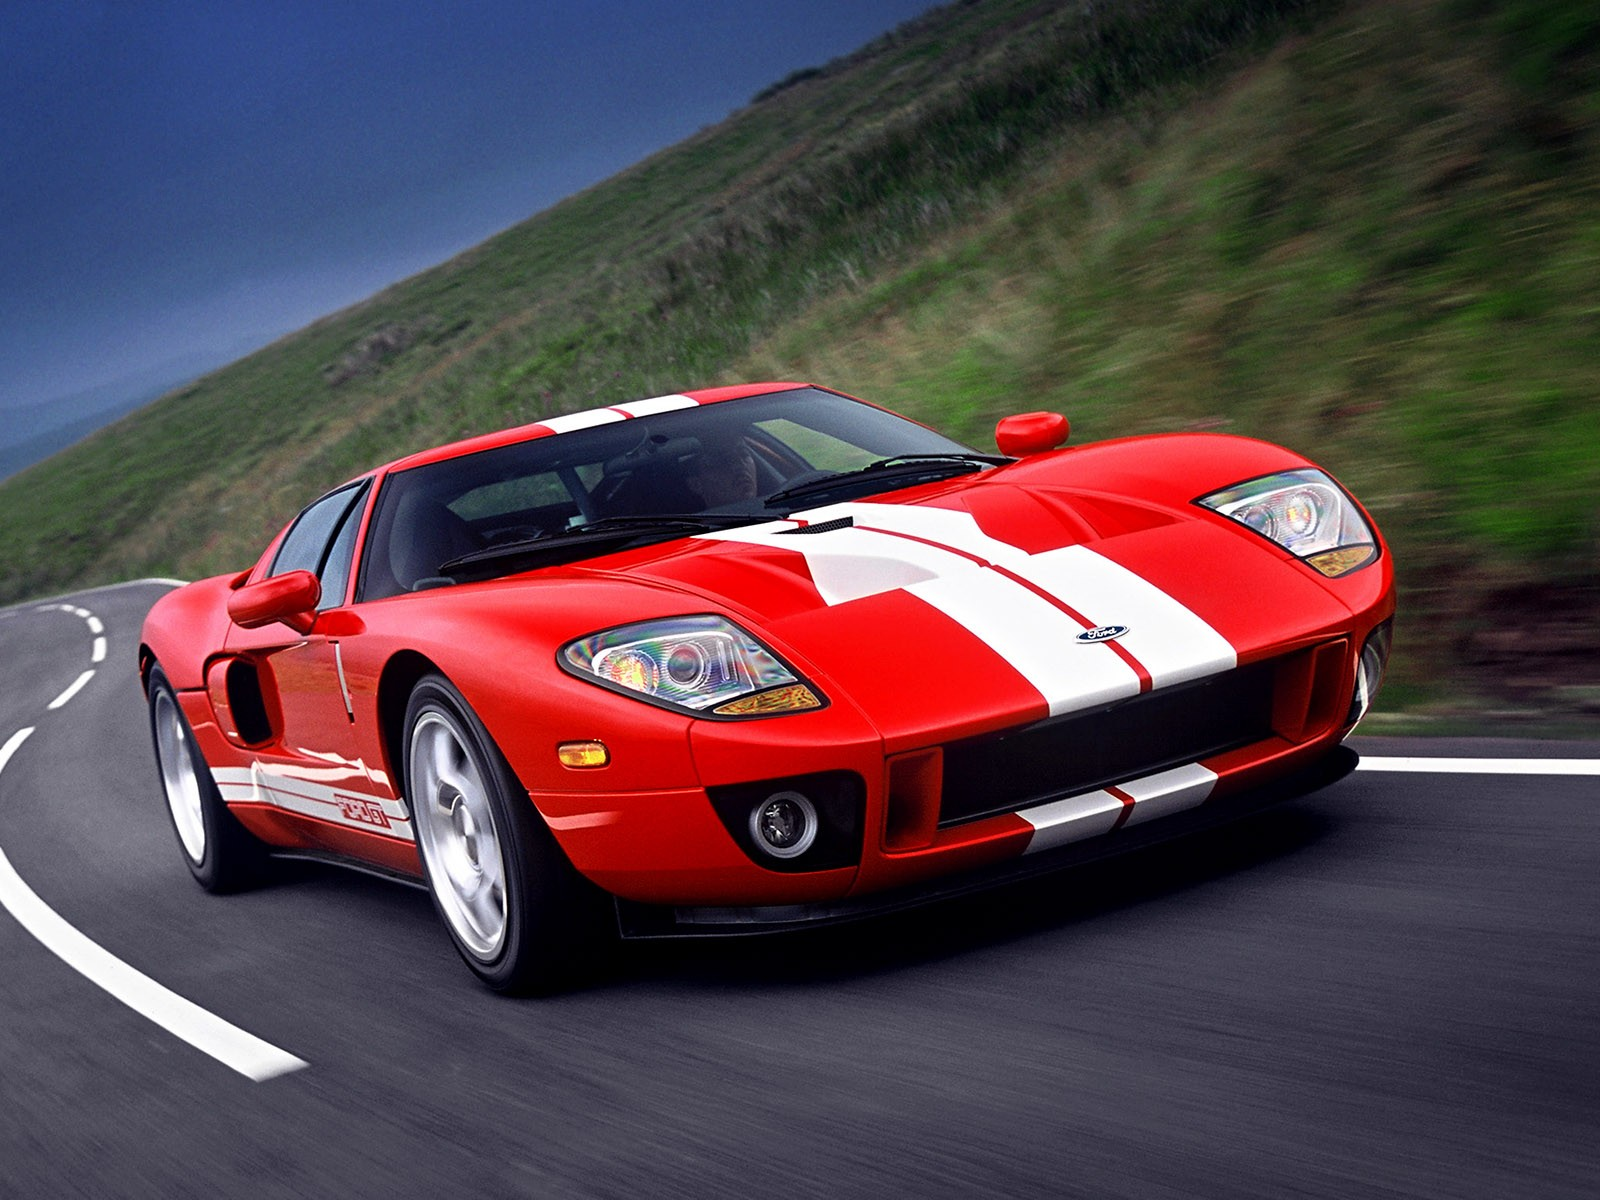 Fast Ford GT Cars Wallpaper HD Dekstop Wallpaper 1600x1200